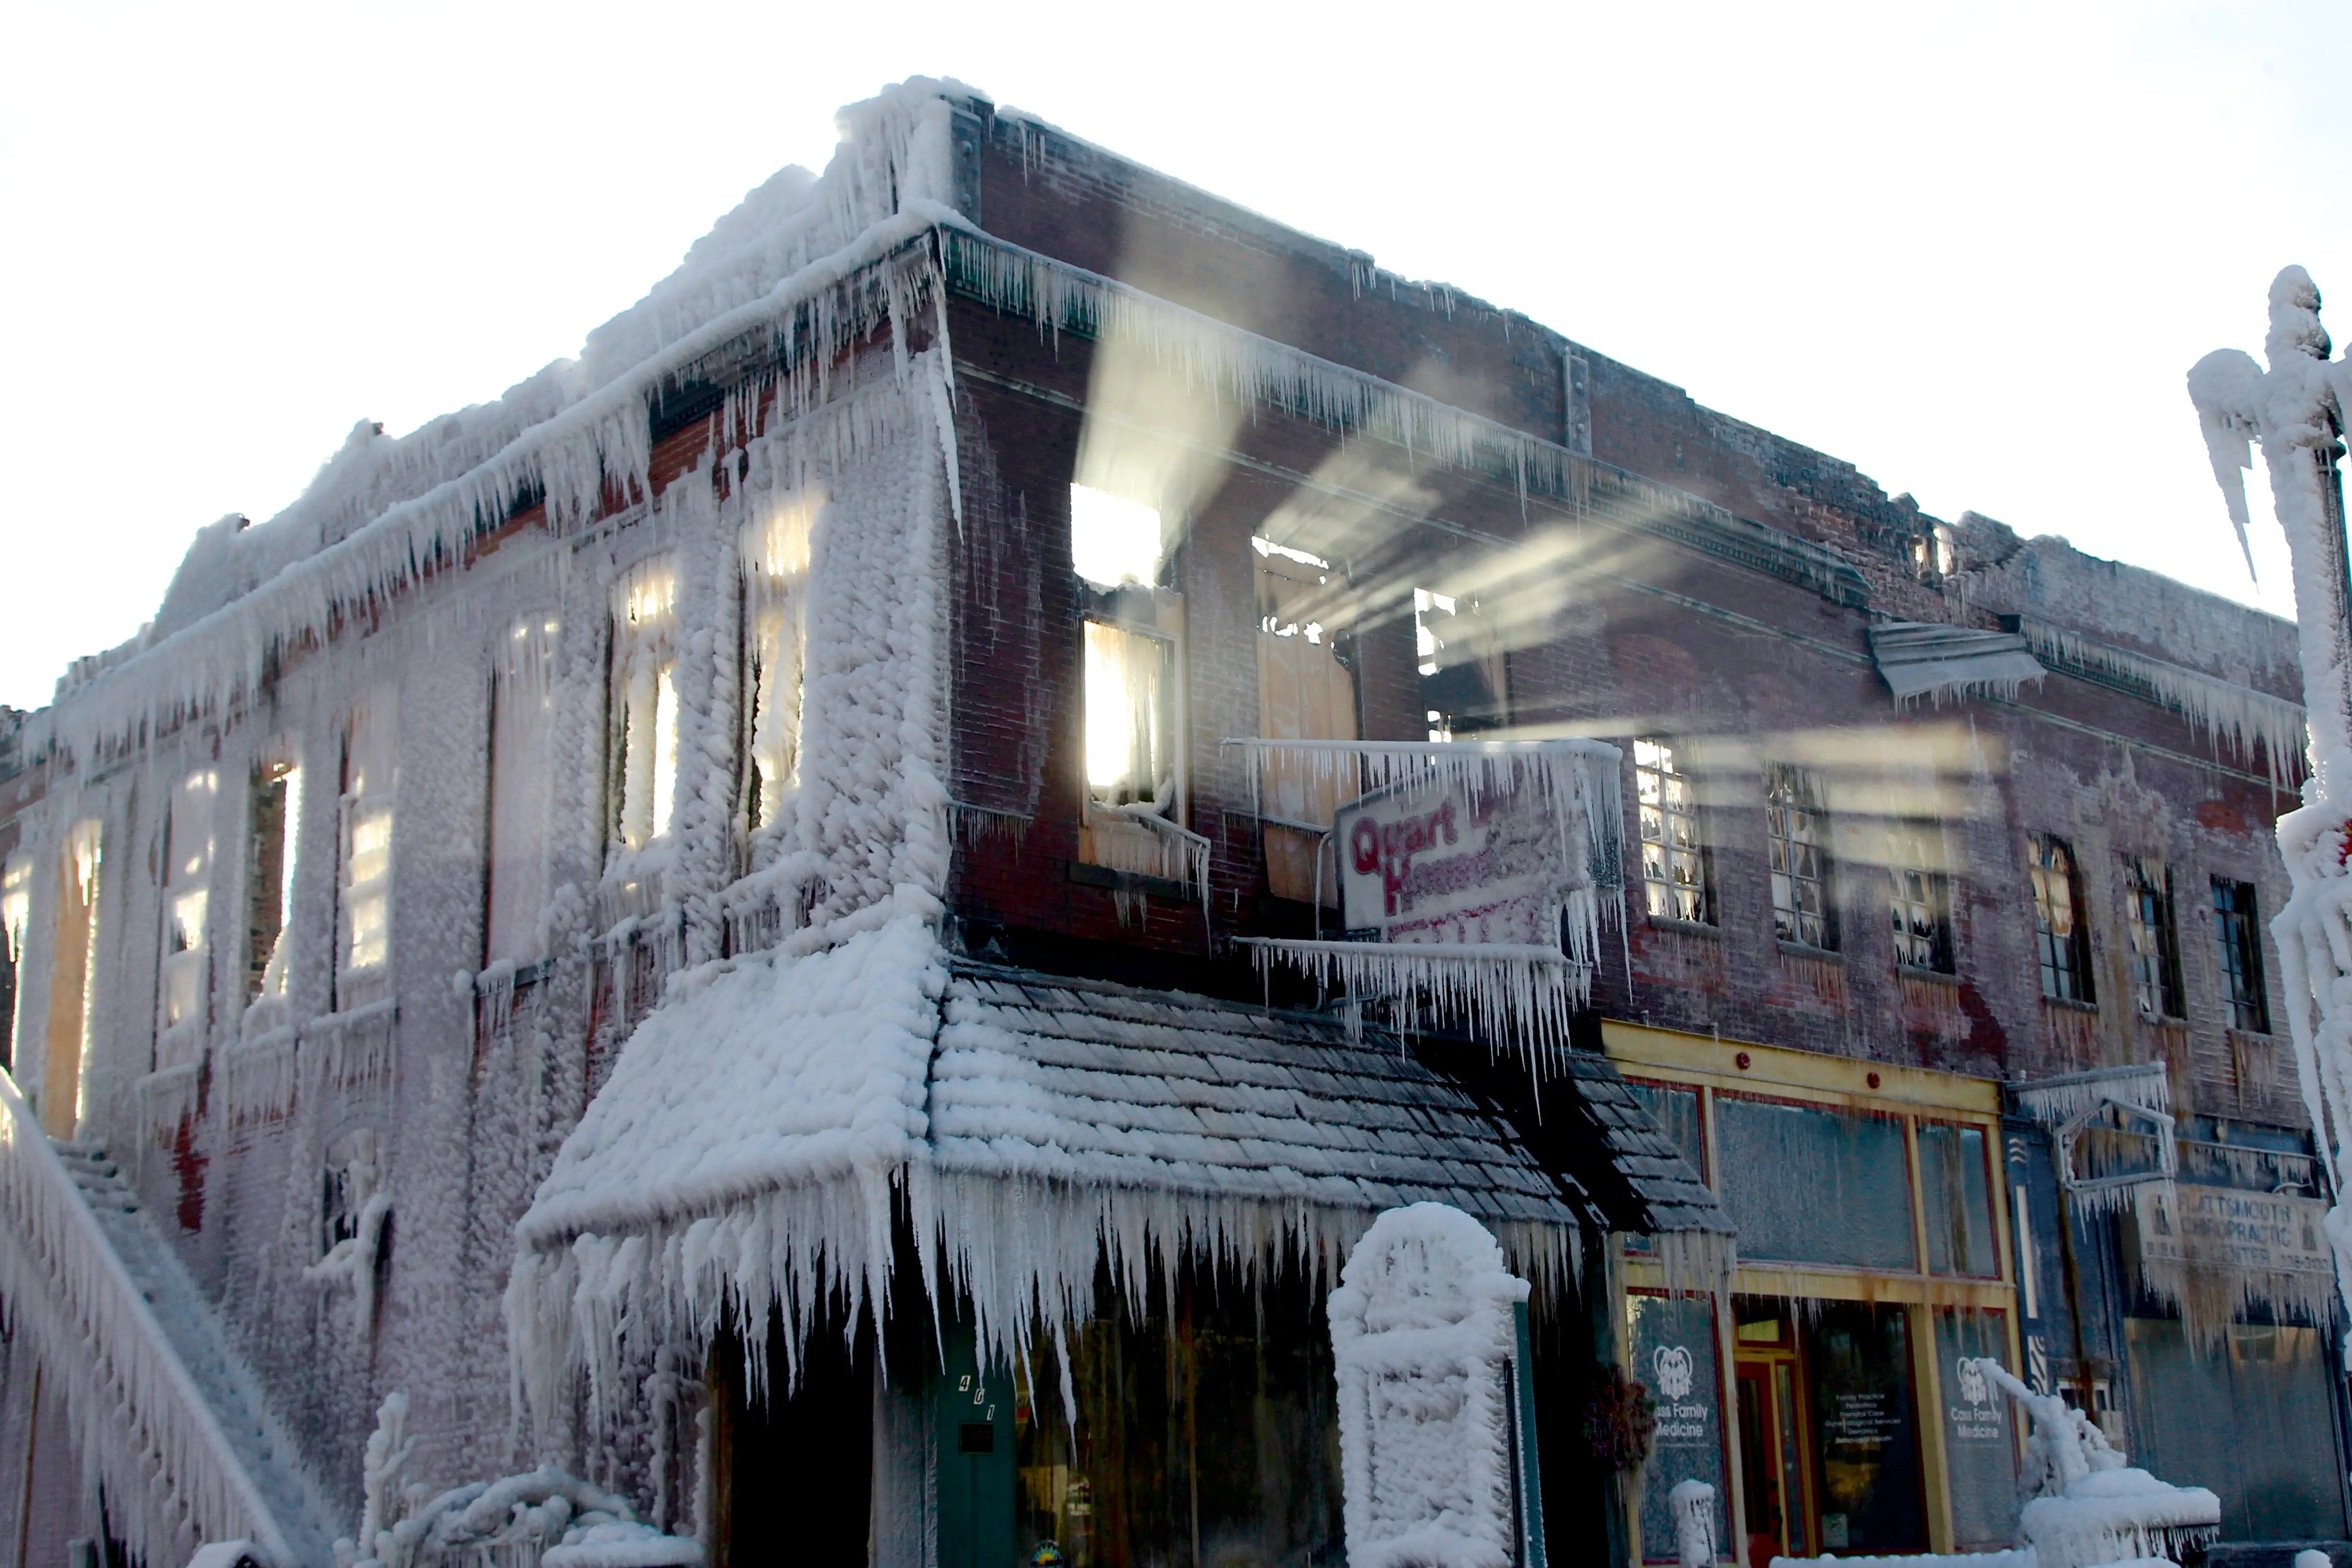 When Nebraska firefighters put out a blaze on Jan. 3, the water they sprayed froze against this building.